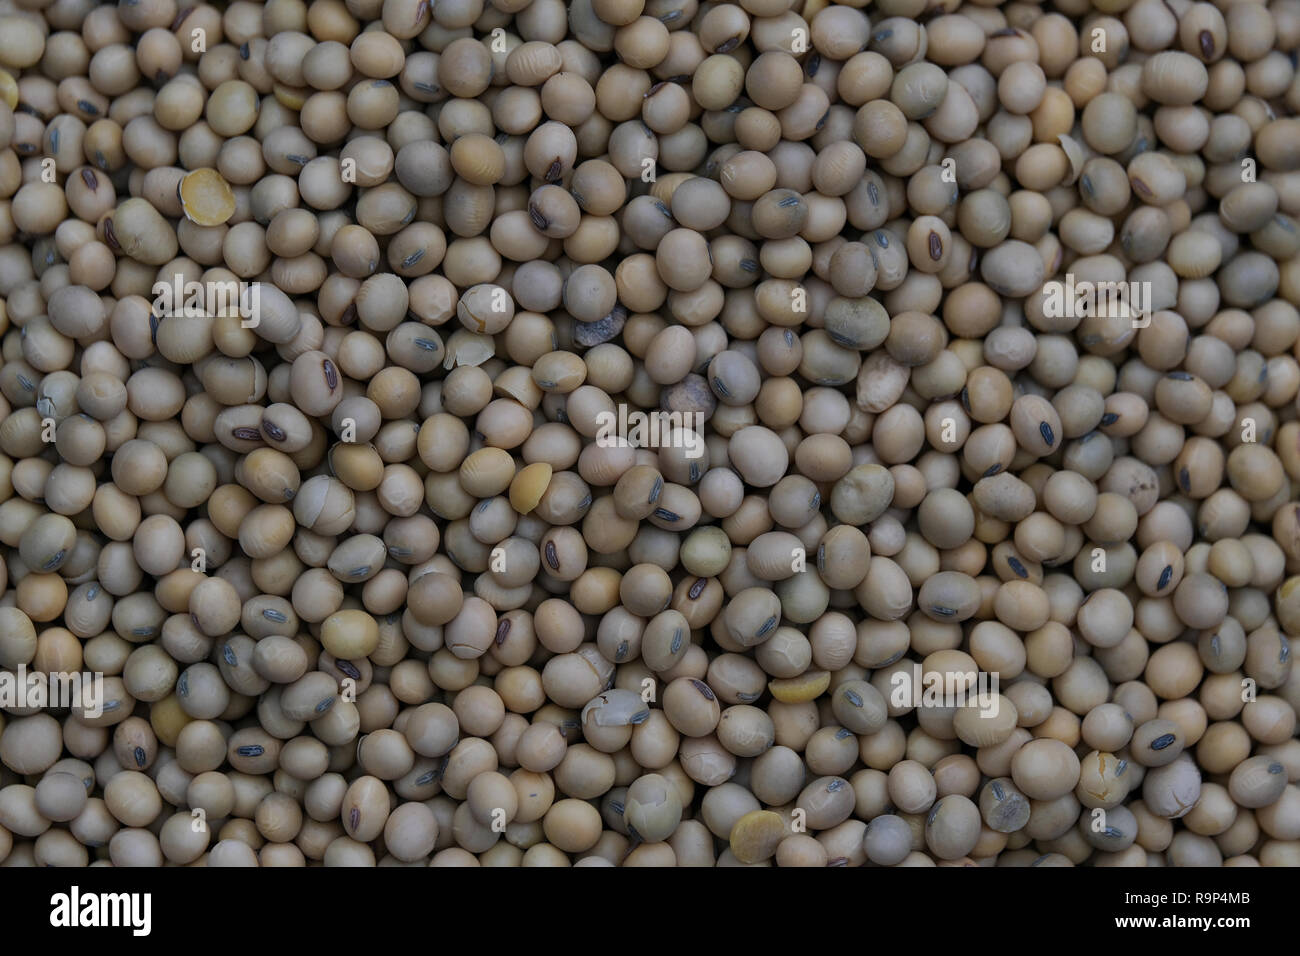 Soya bean seed, soybeans or Glycine max. Royalty high-quality free stock image heap of Soya bean seed, soybeans background with copy space - Stock Image